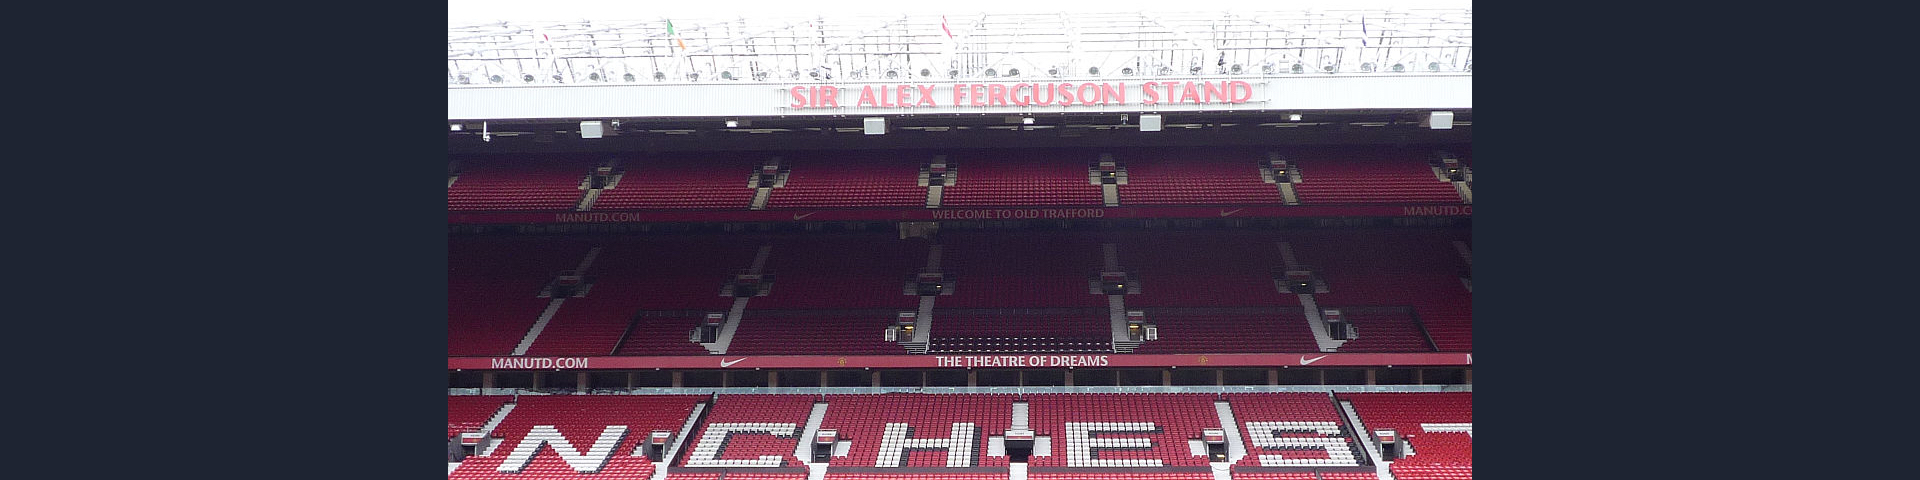 Alternate Football History – Fergie takes an early exit